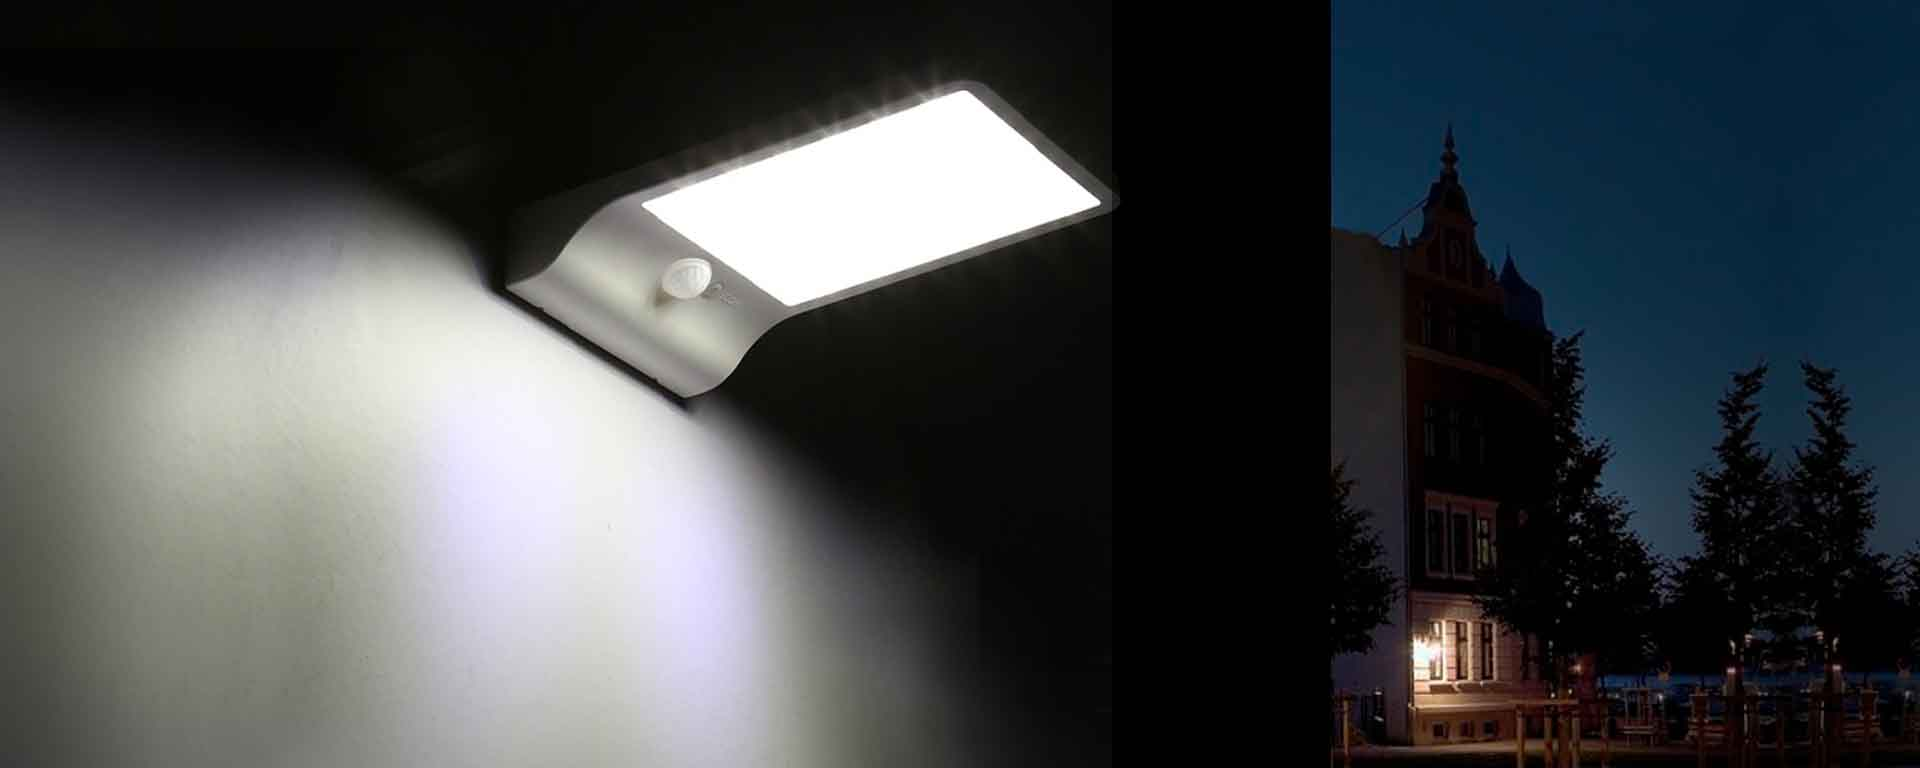 Solar Lights: Use LEDs and Get the Best of All Possible Lighting